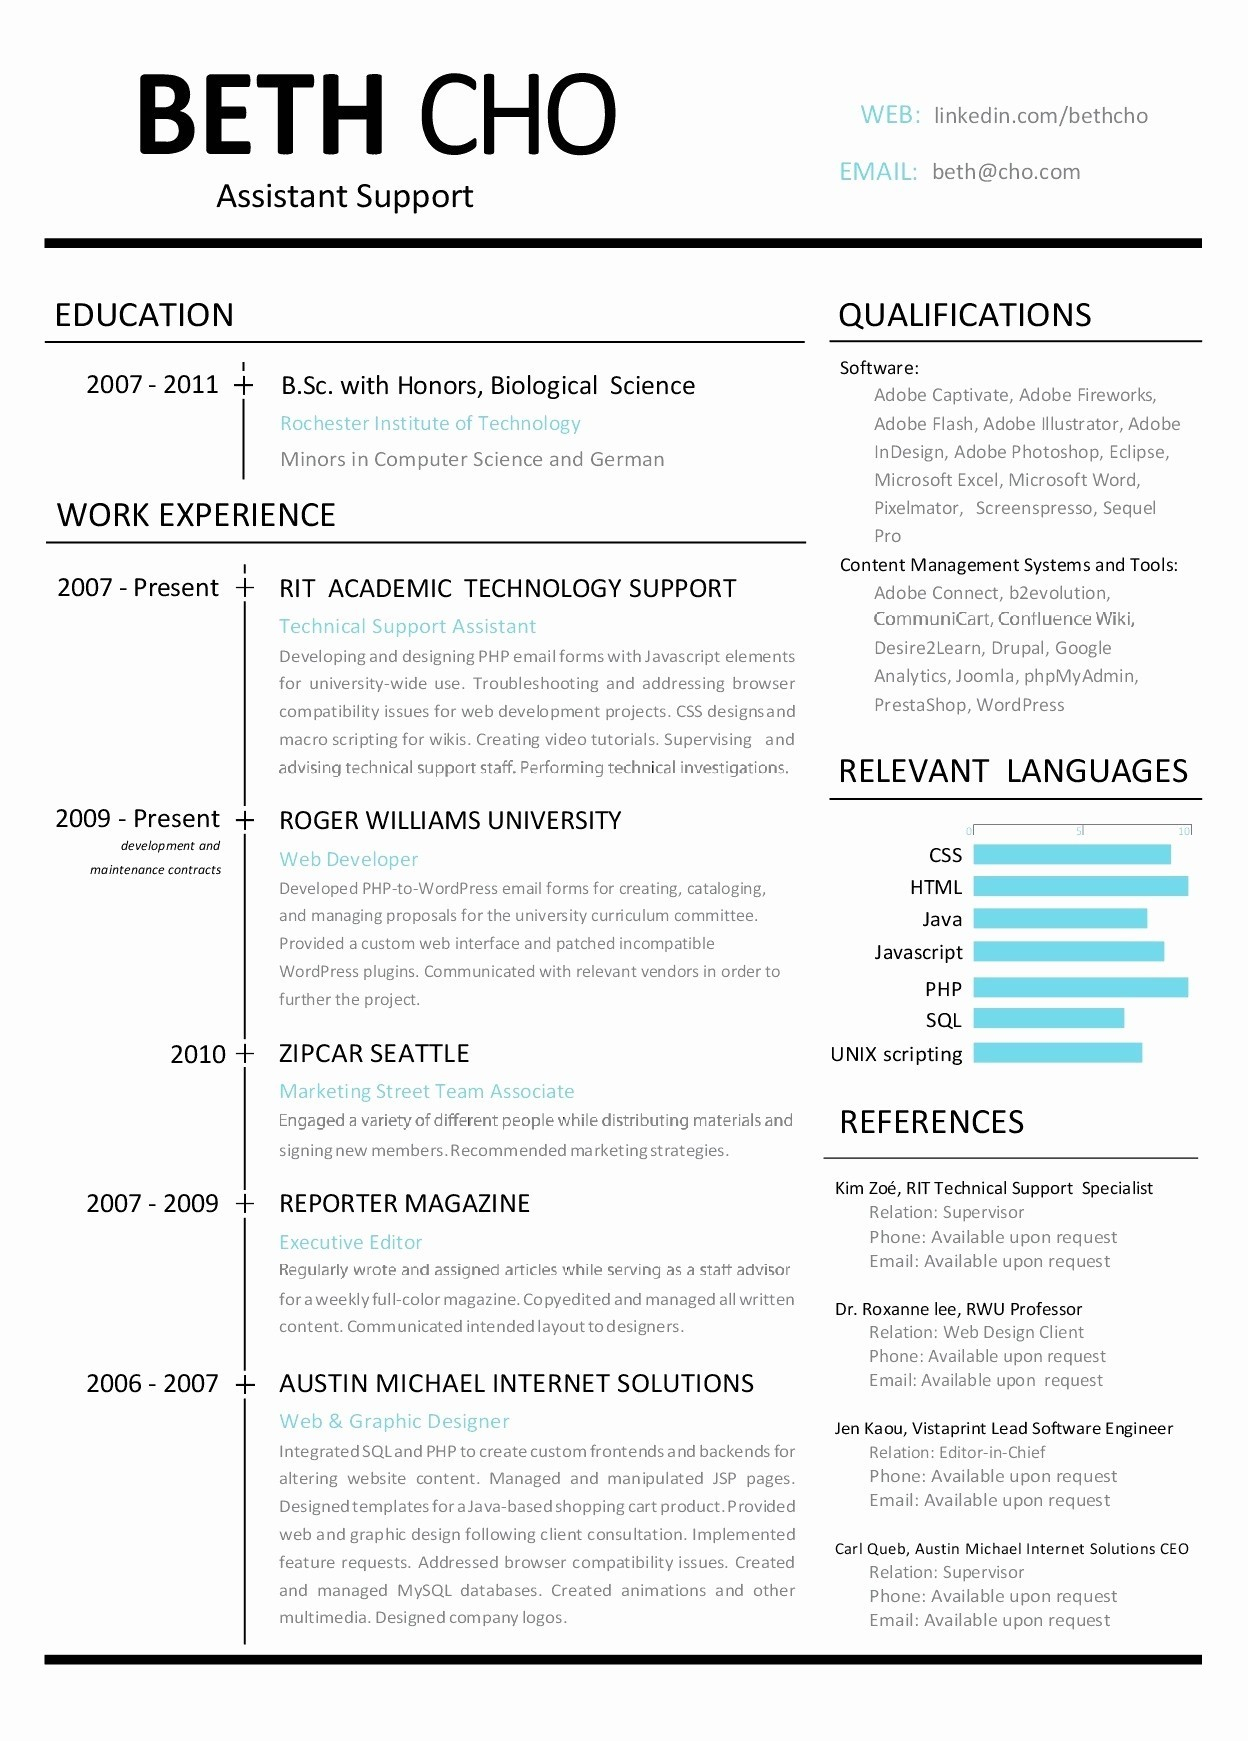 Resume Website Template Free - Resume Website Examples New Resume Website Template Free